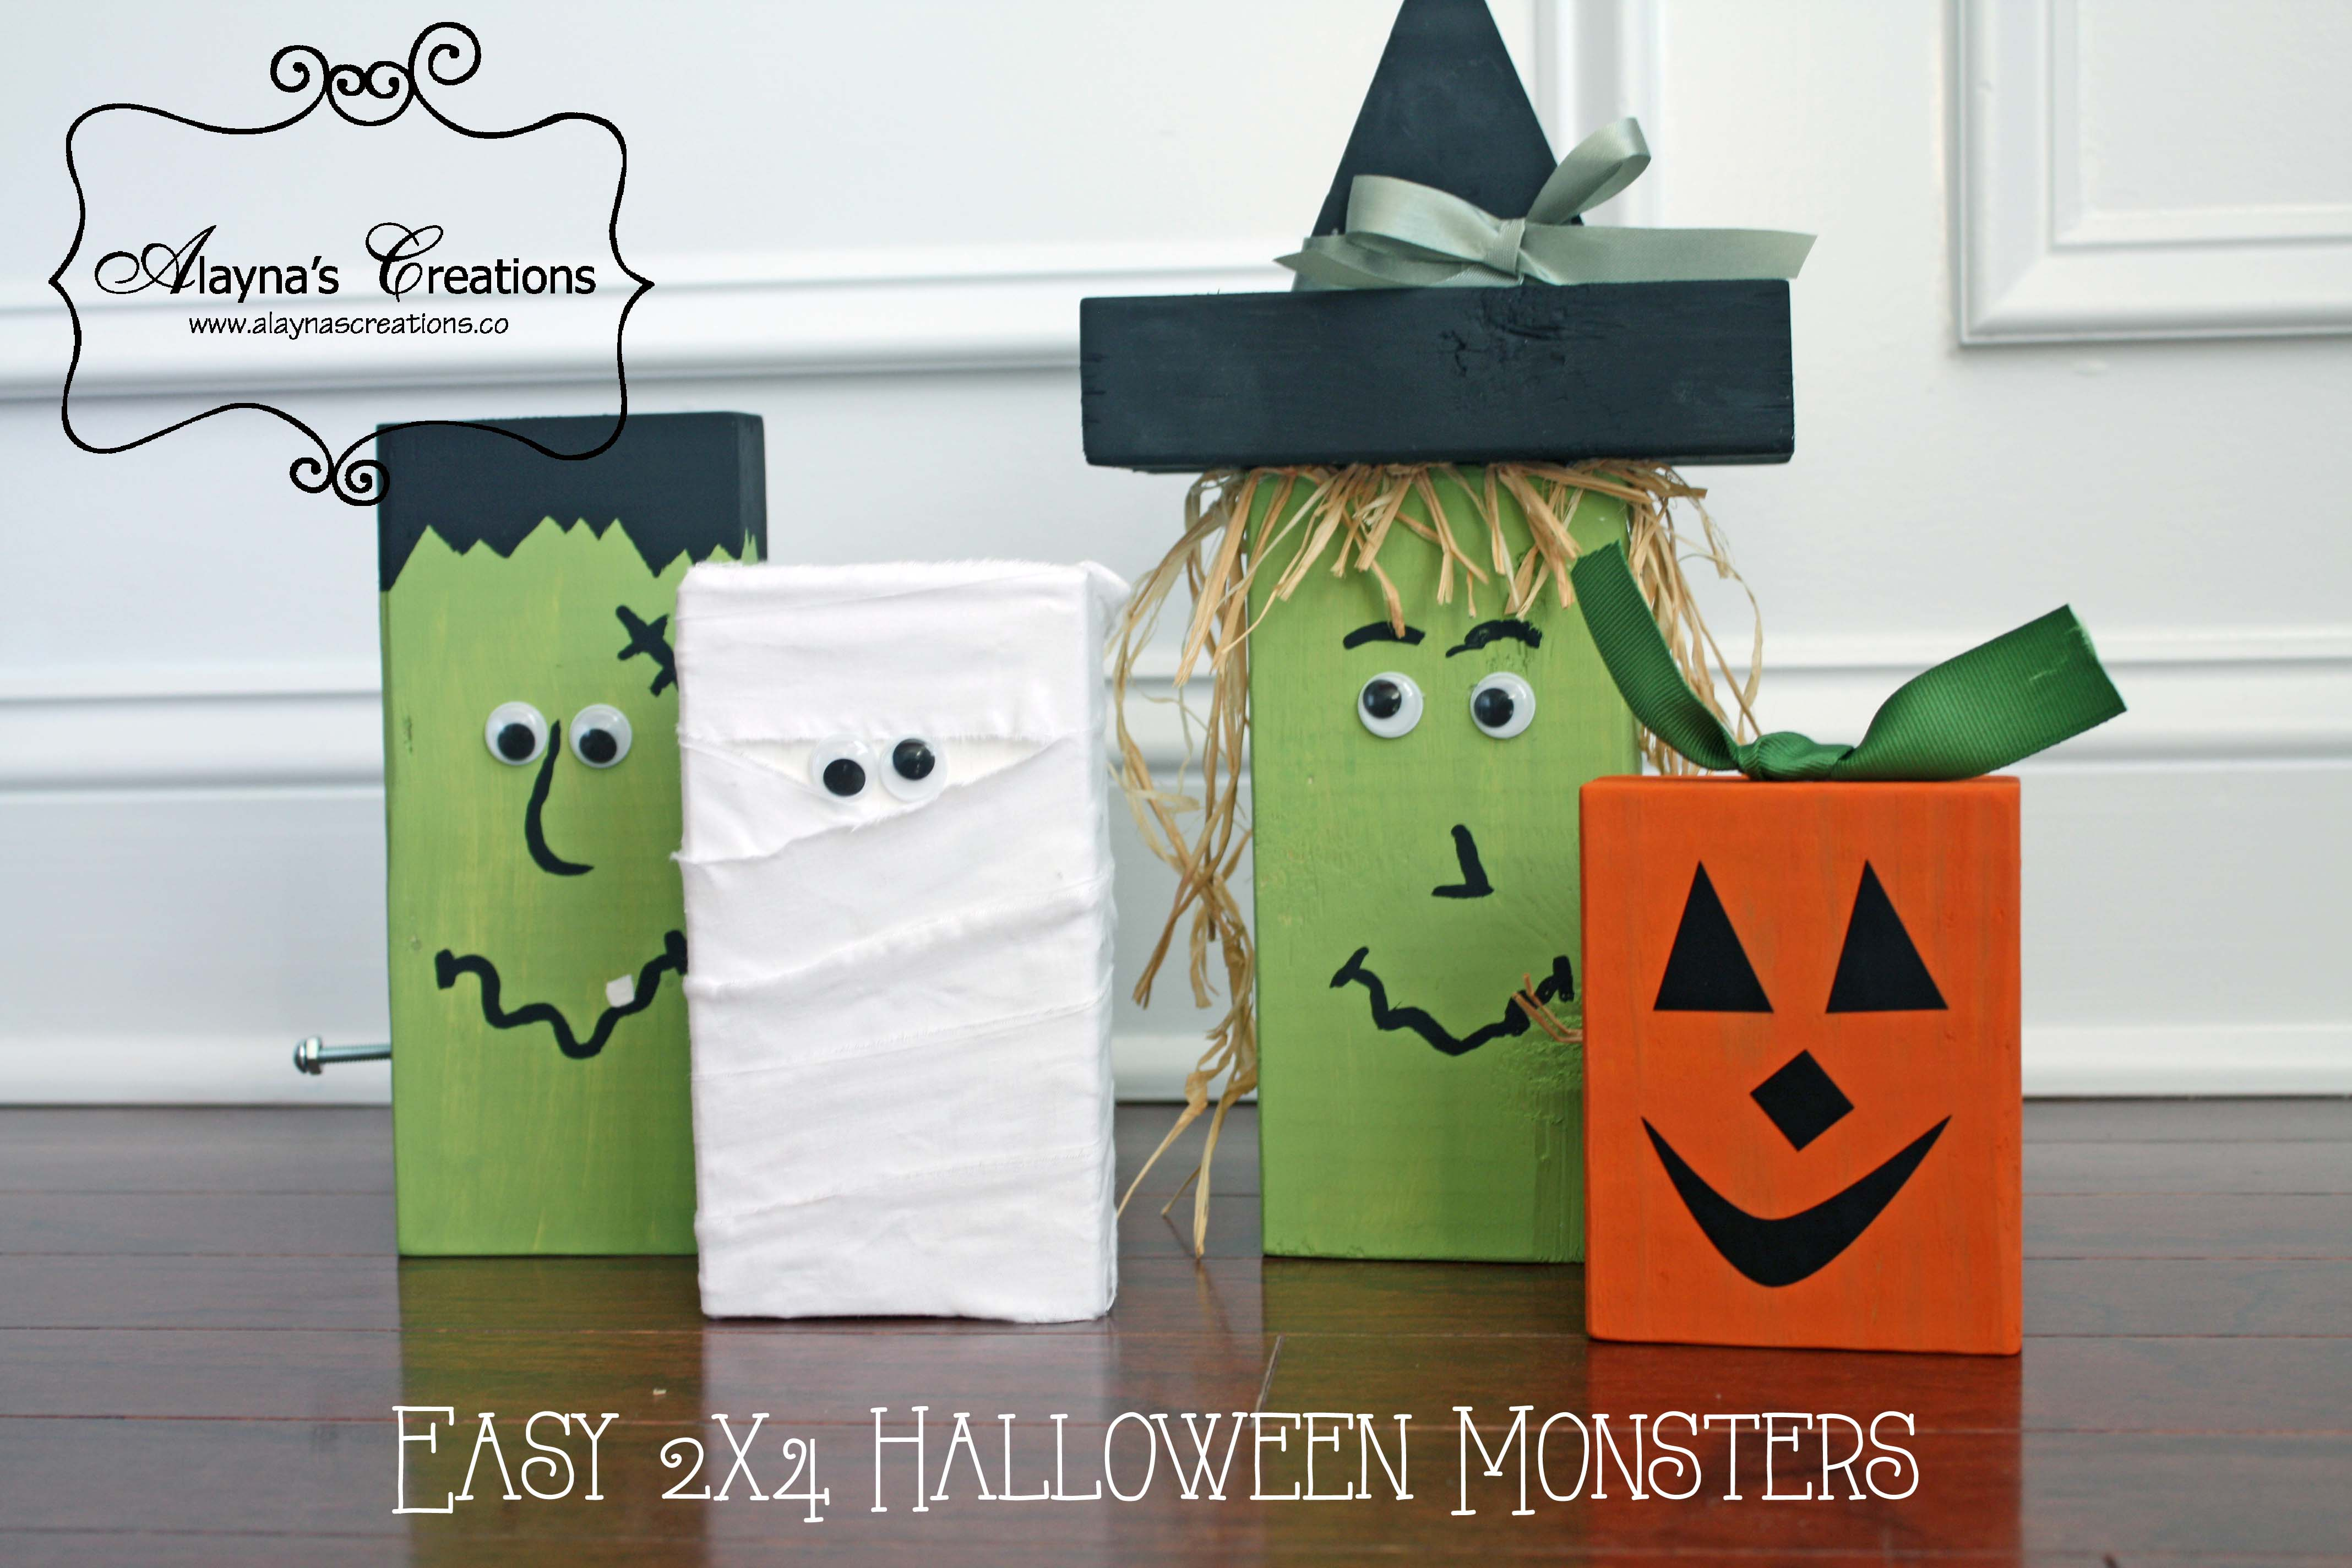 easy 2x4 halloween monsters tutorial for diy wooden halloween craft featureing frankenstein witch pumpkin and mummy - Halloween Projects Diy